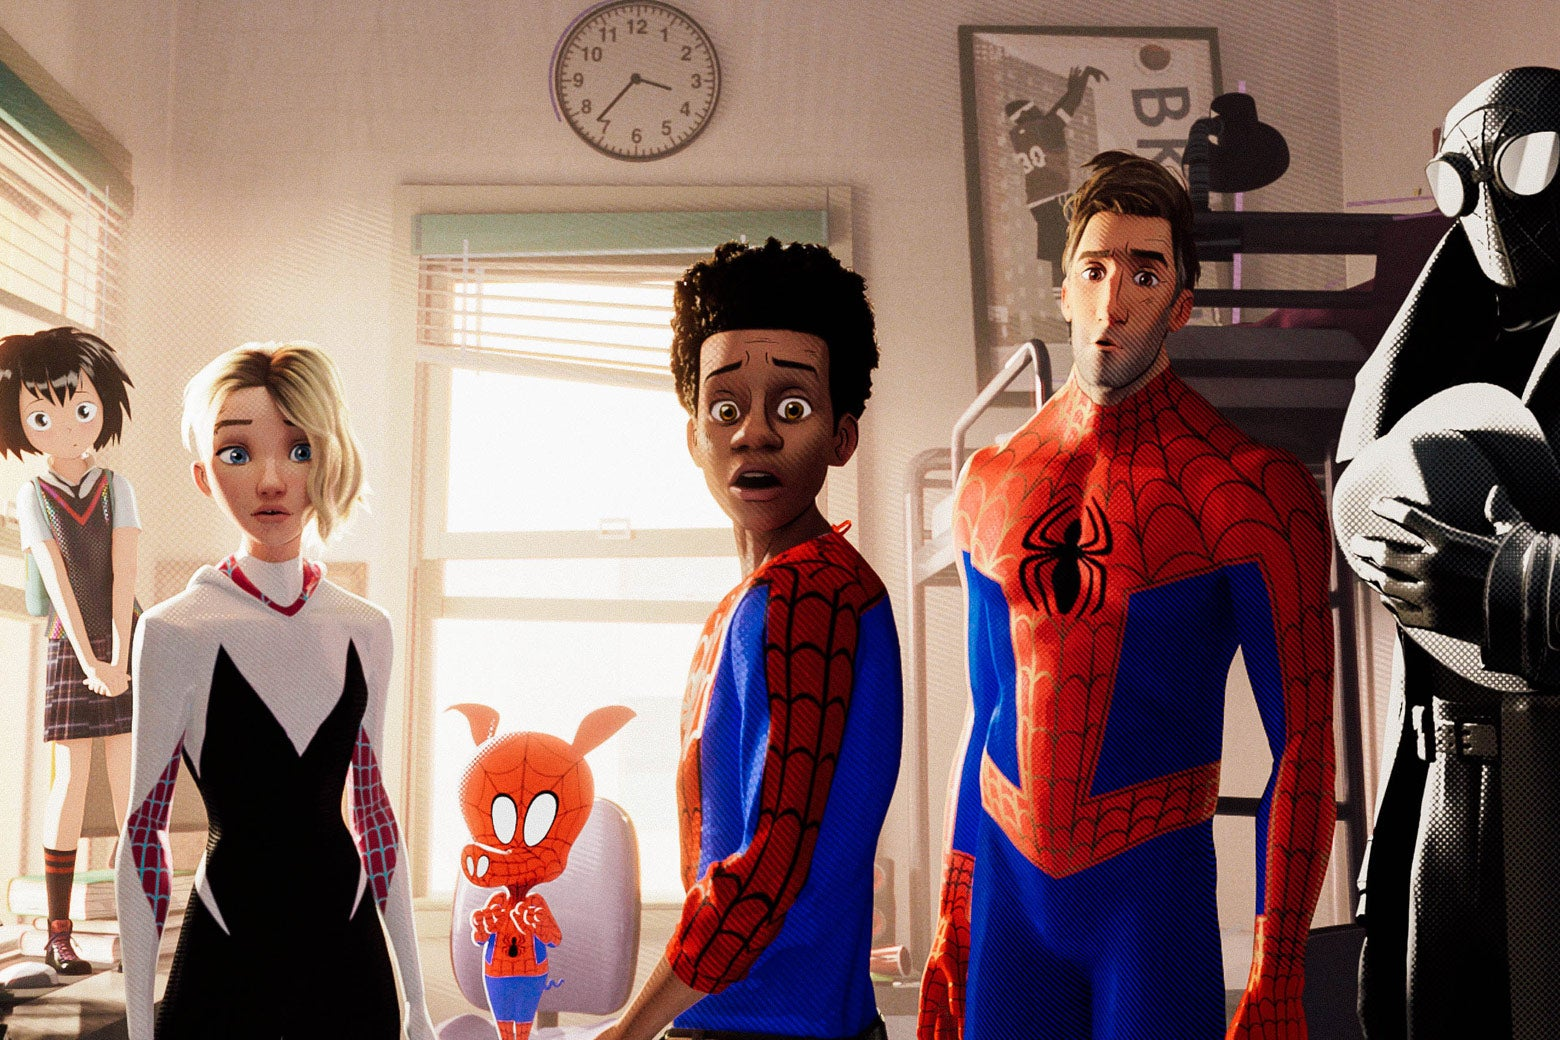 A still featuring several characters from Spider-Man: Into the Spider-Verse.